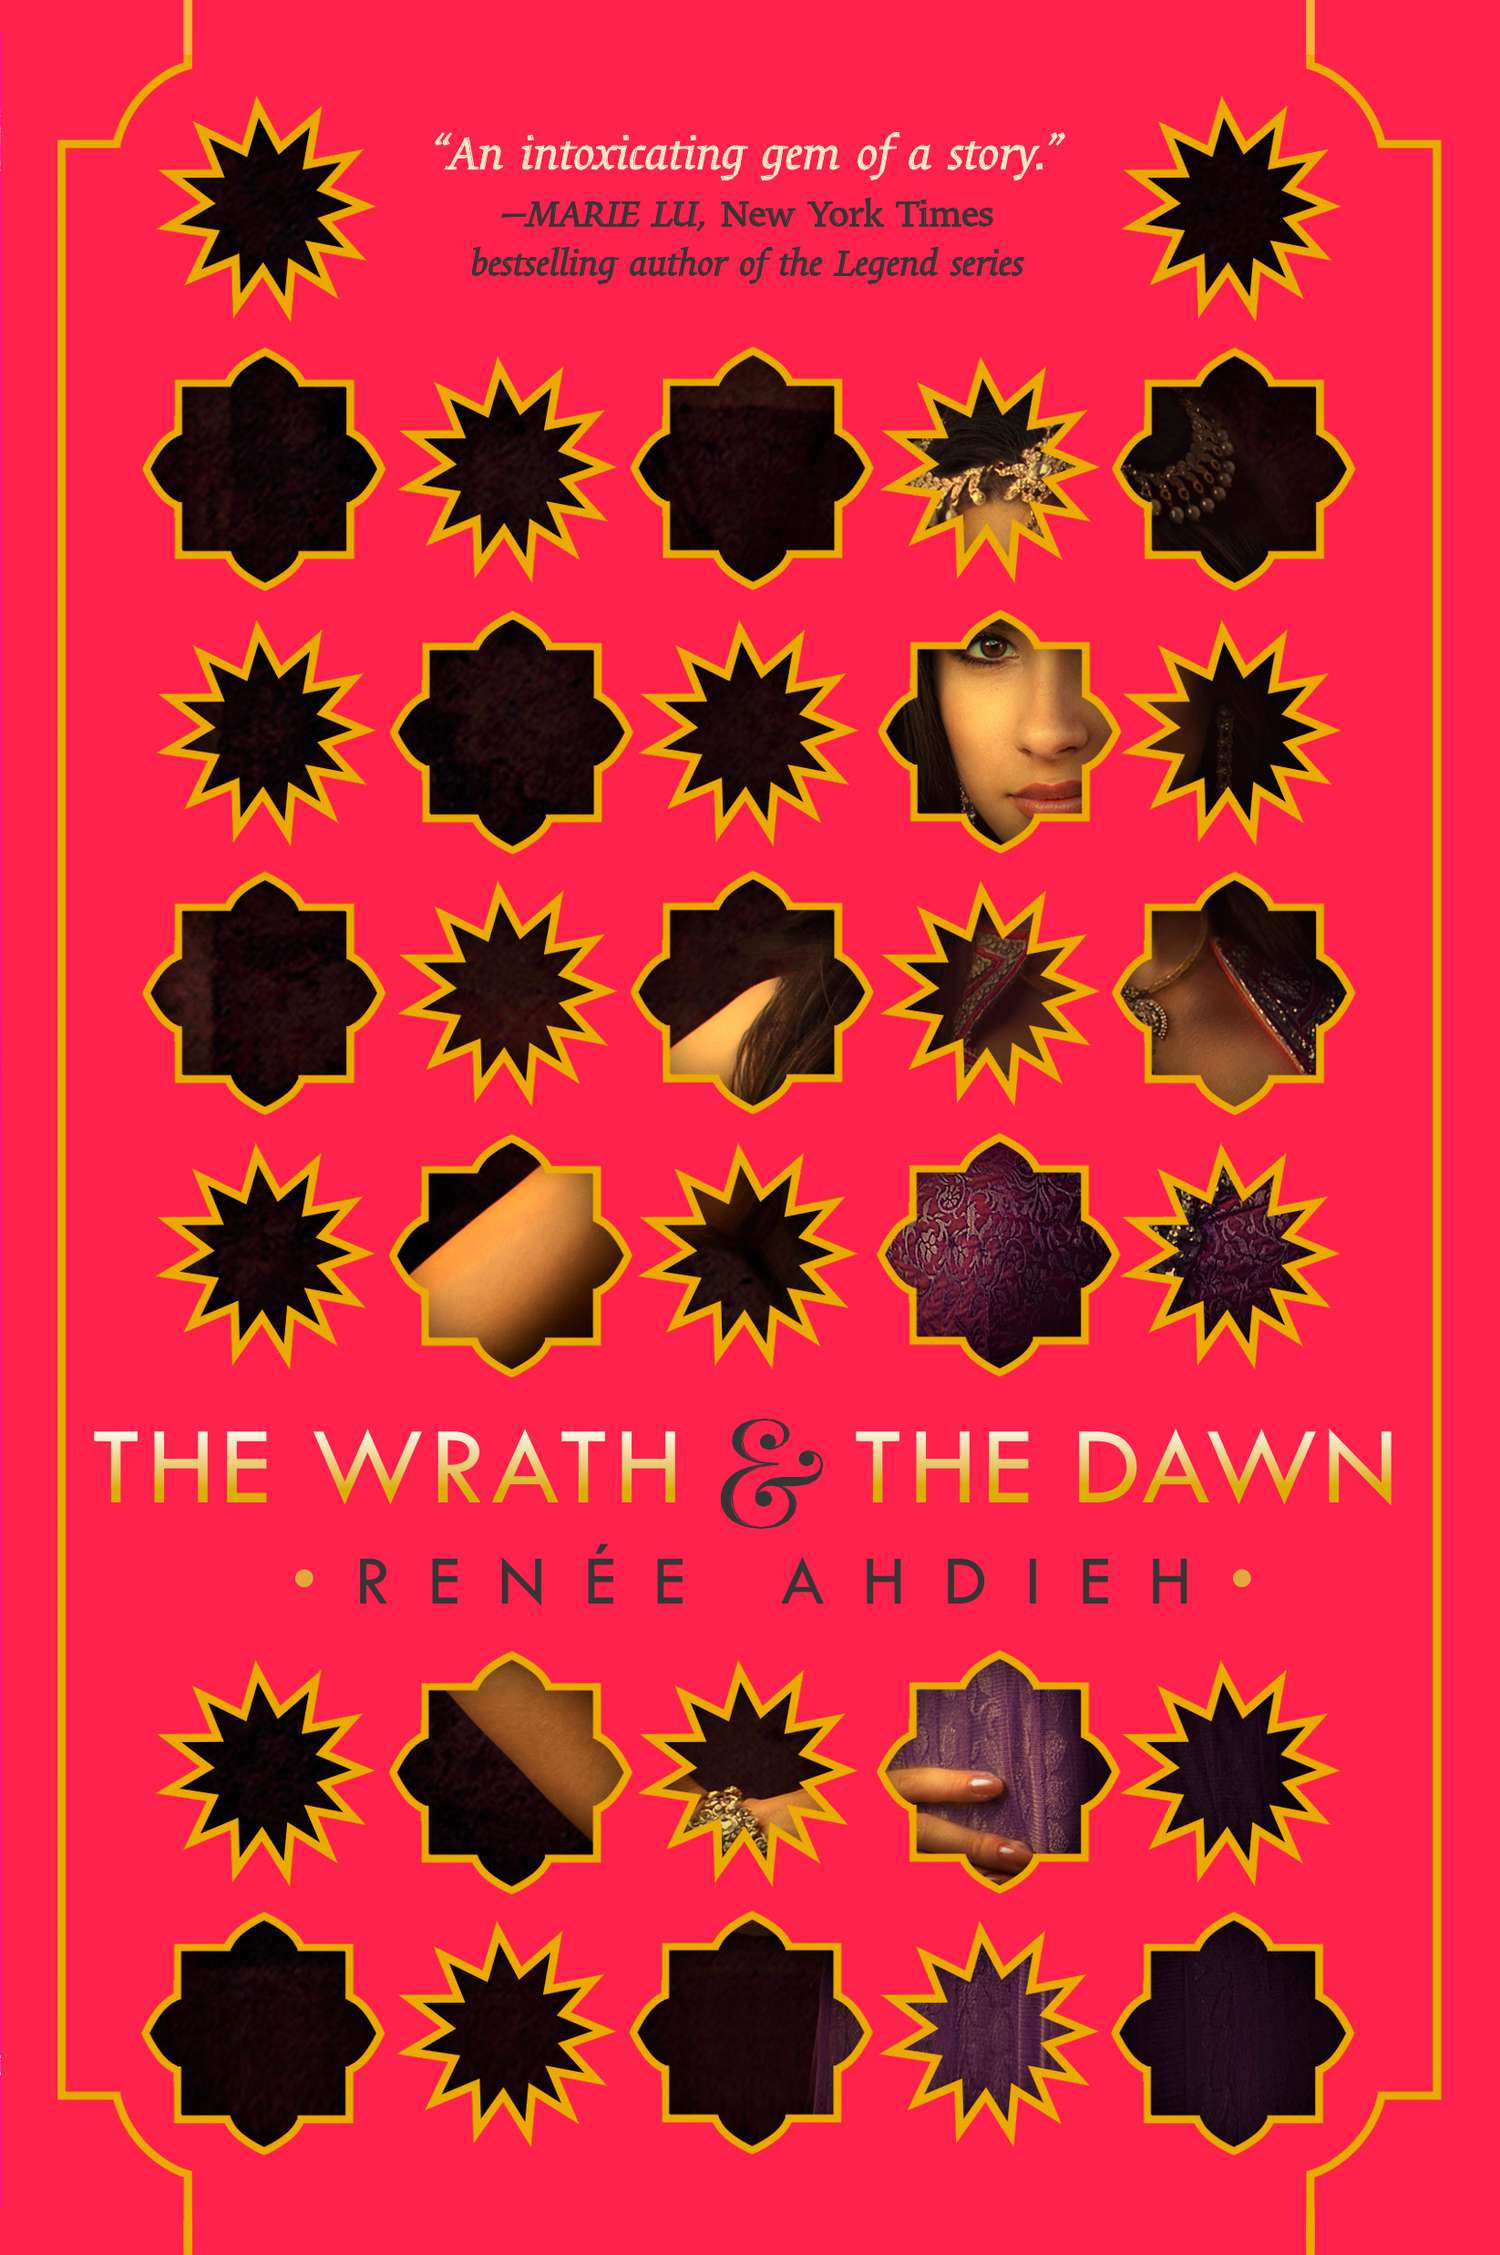 https://i2.wp.com/www.myfriendsarefiction.com/wp-content/uploads/2015/01/9780399171611_large_The_Wrath_and_the_Dawn.jpg